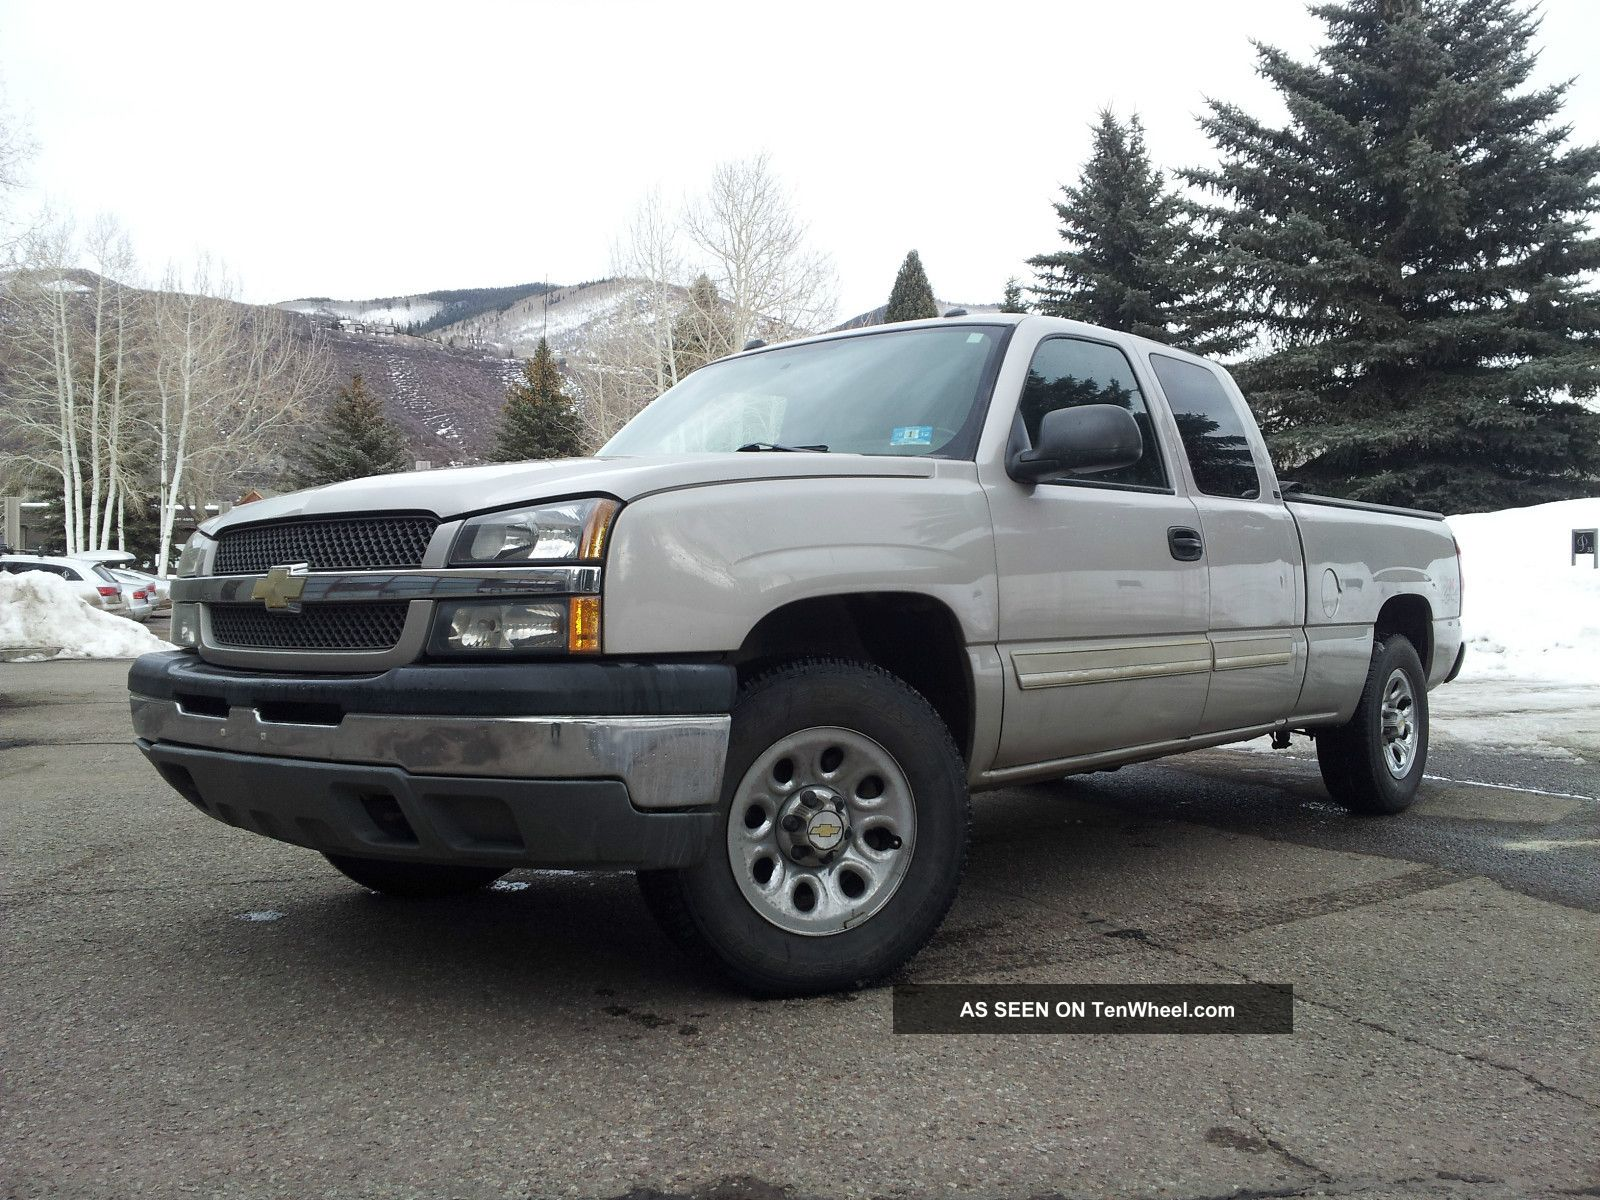 chevrolet silverado 1500 4x4 ext cab 4 door 2005 bage vortex 5 3 liter. Black Bedroom Furniture Sets. Home Design Ideas